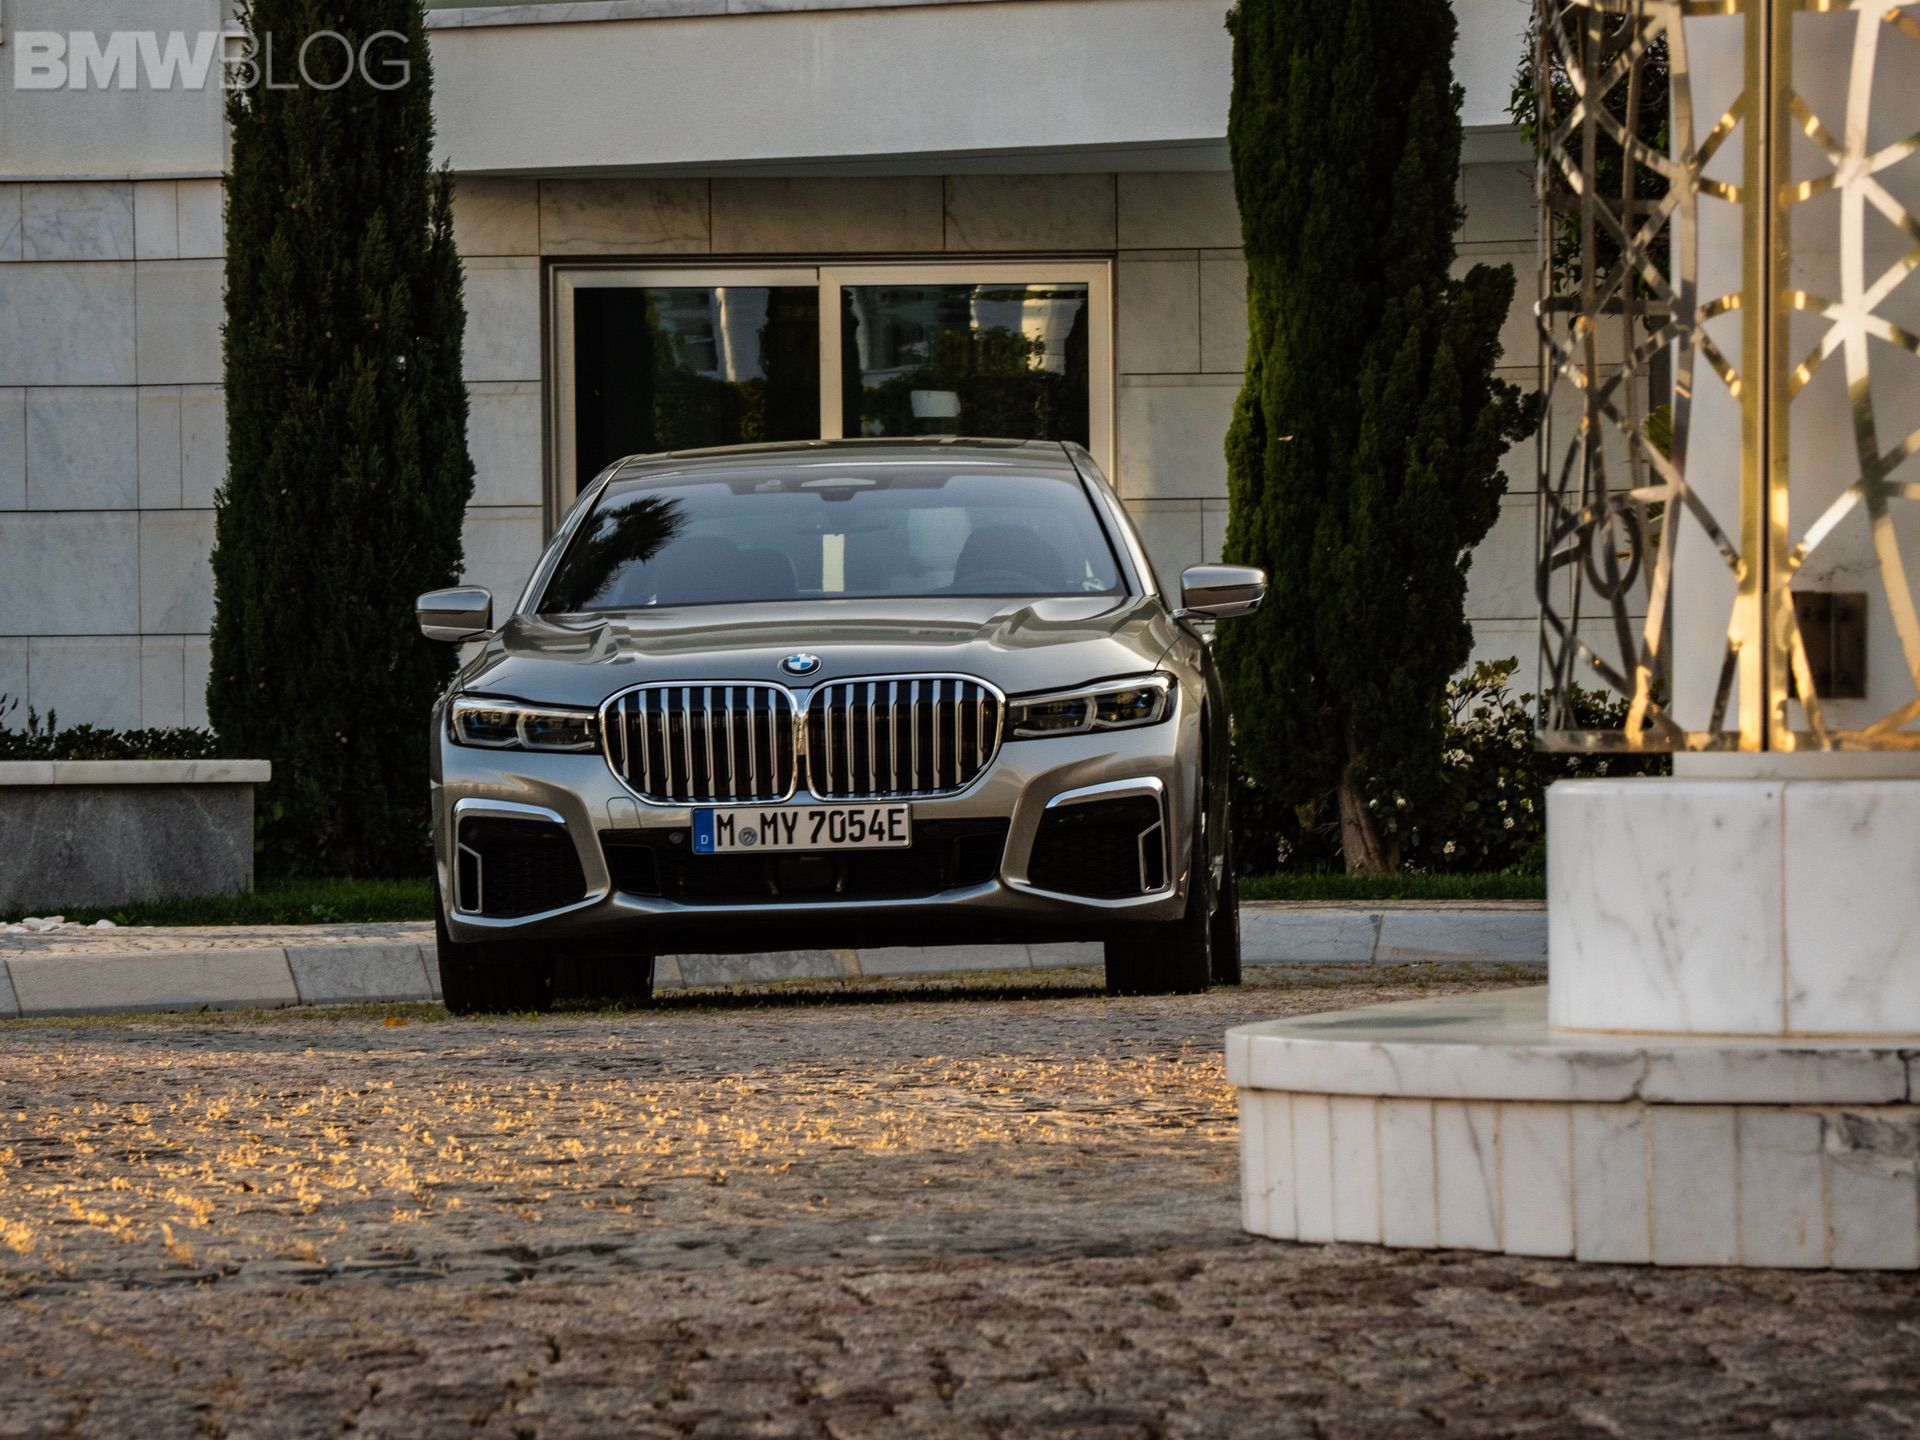 A closer look at the 2019 BMW 745Le Hybrid